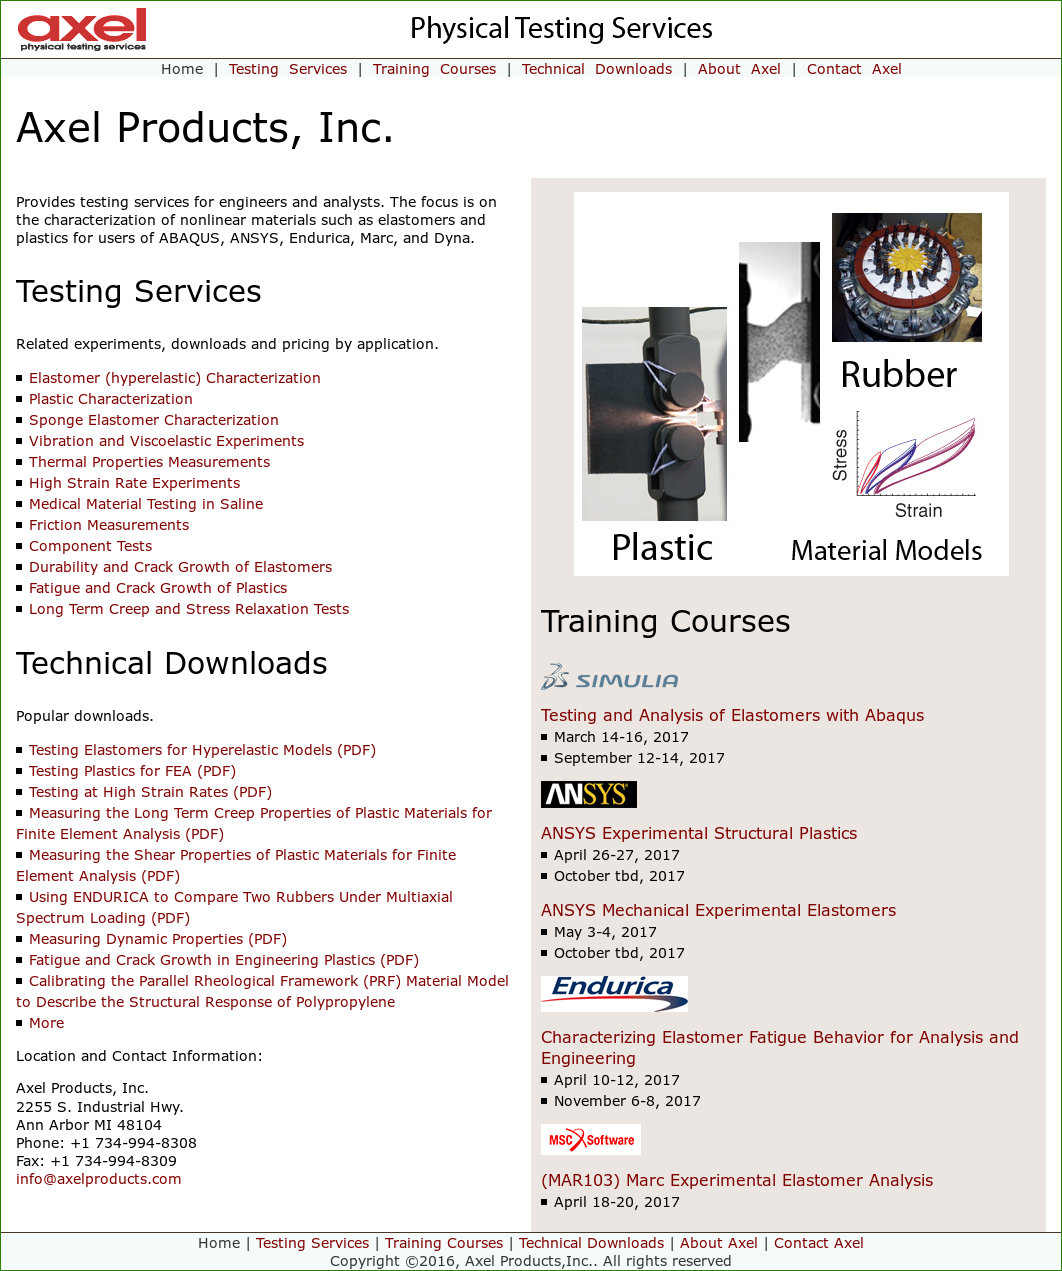 Axel Products Competitors, Revenue and Employees - Owler